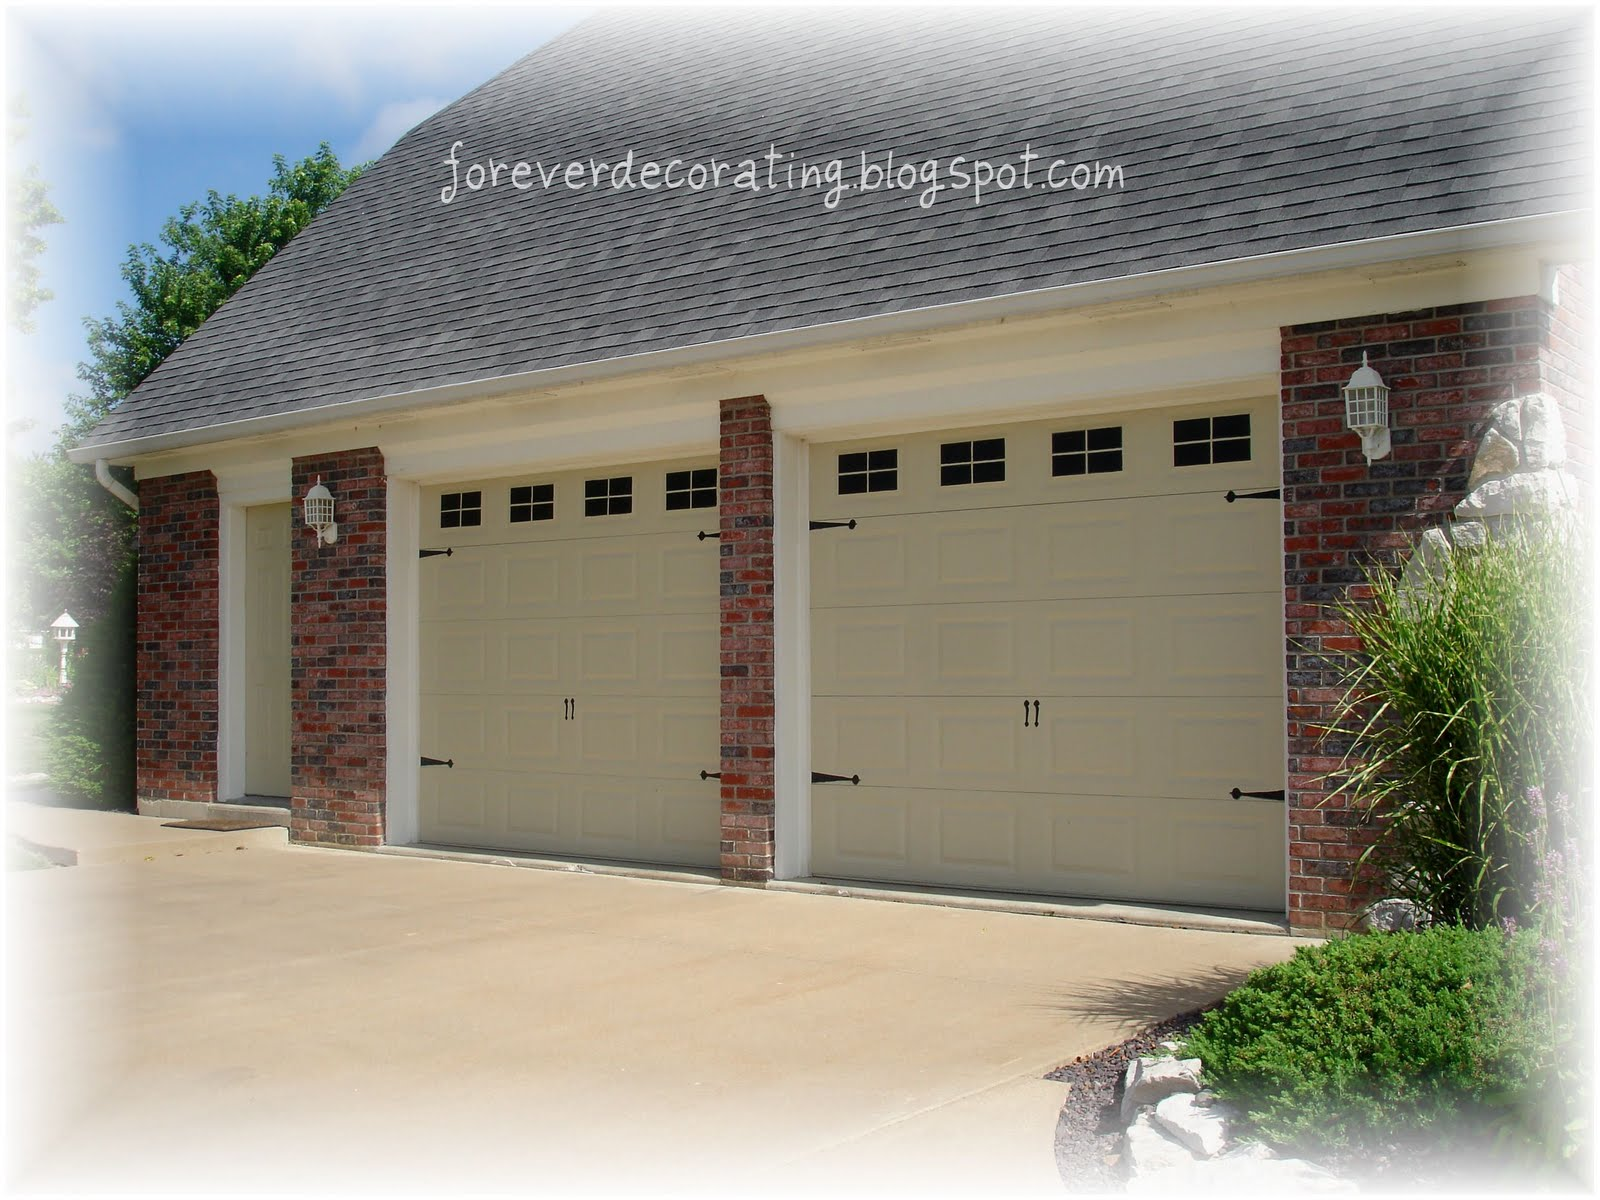 Forever decorating carriage house garage doors guest post for carriage house garage doors guest post for remodelaholic solutioingenieria Images